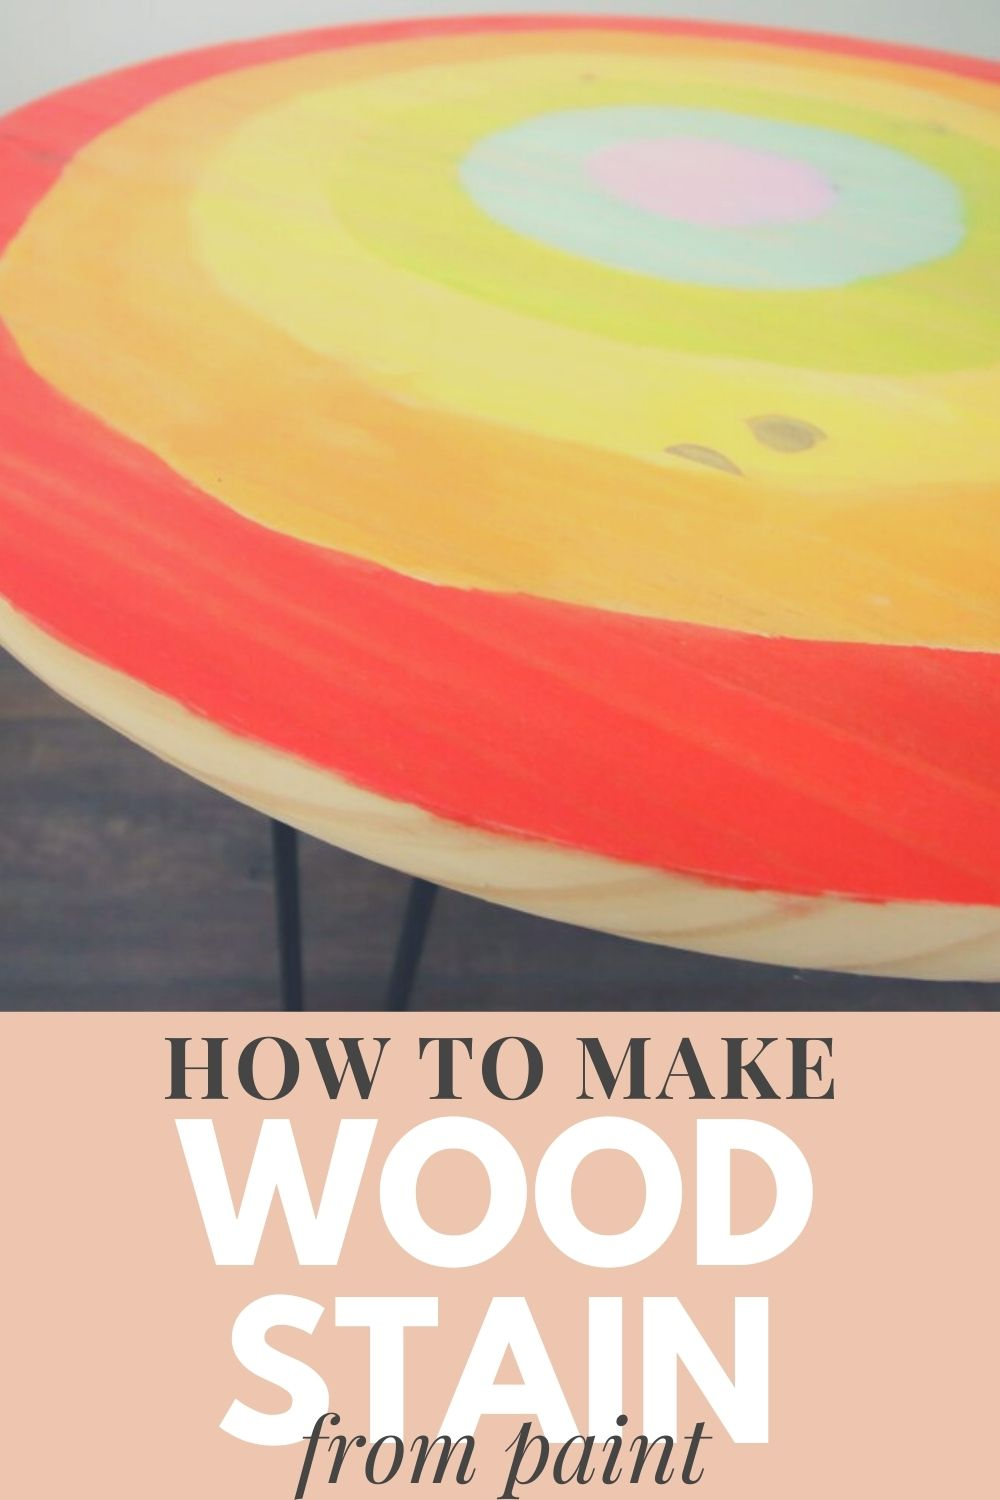 how to make wood stain from paint